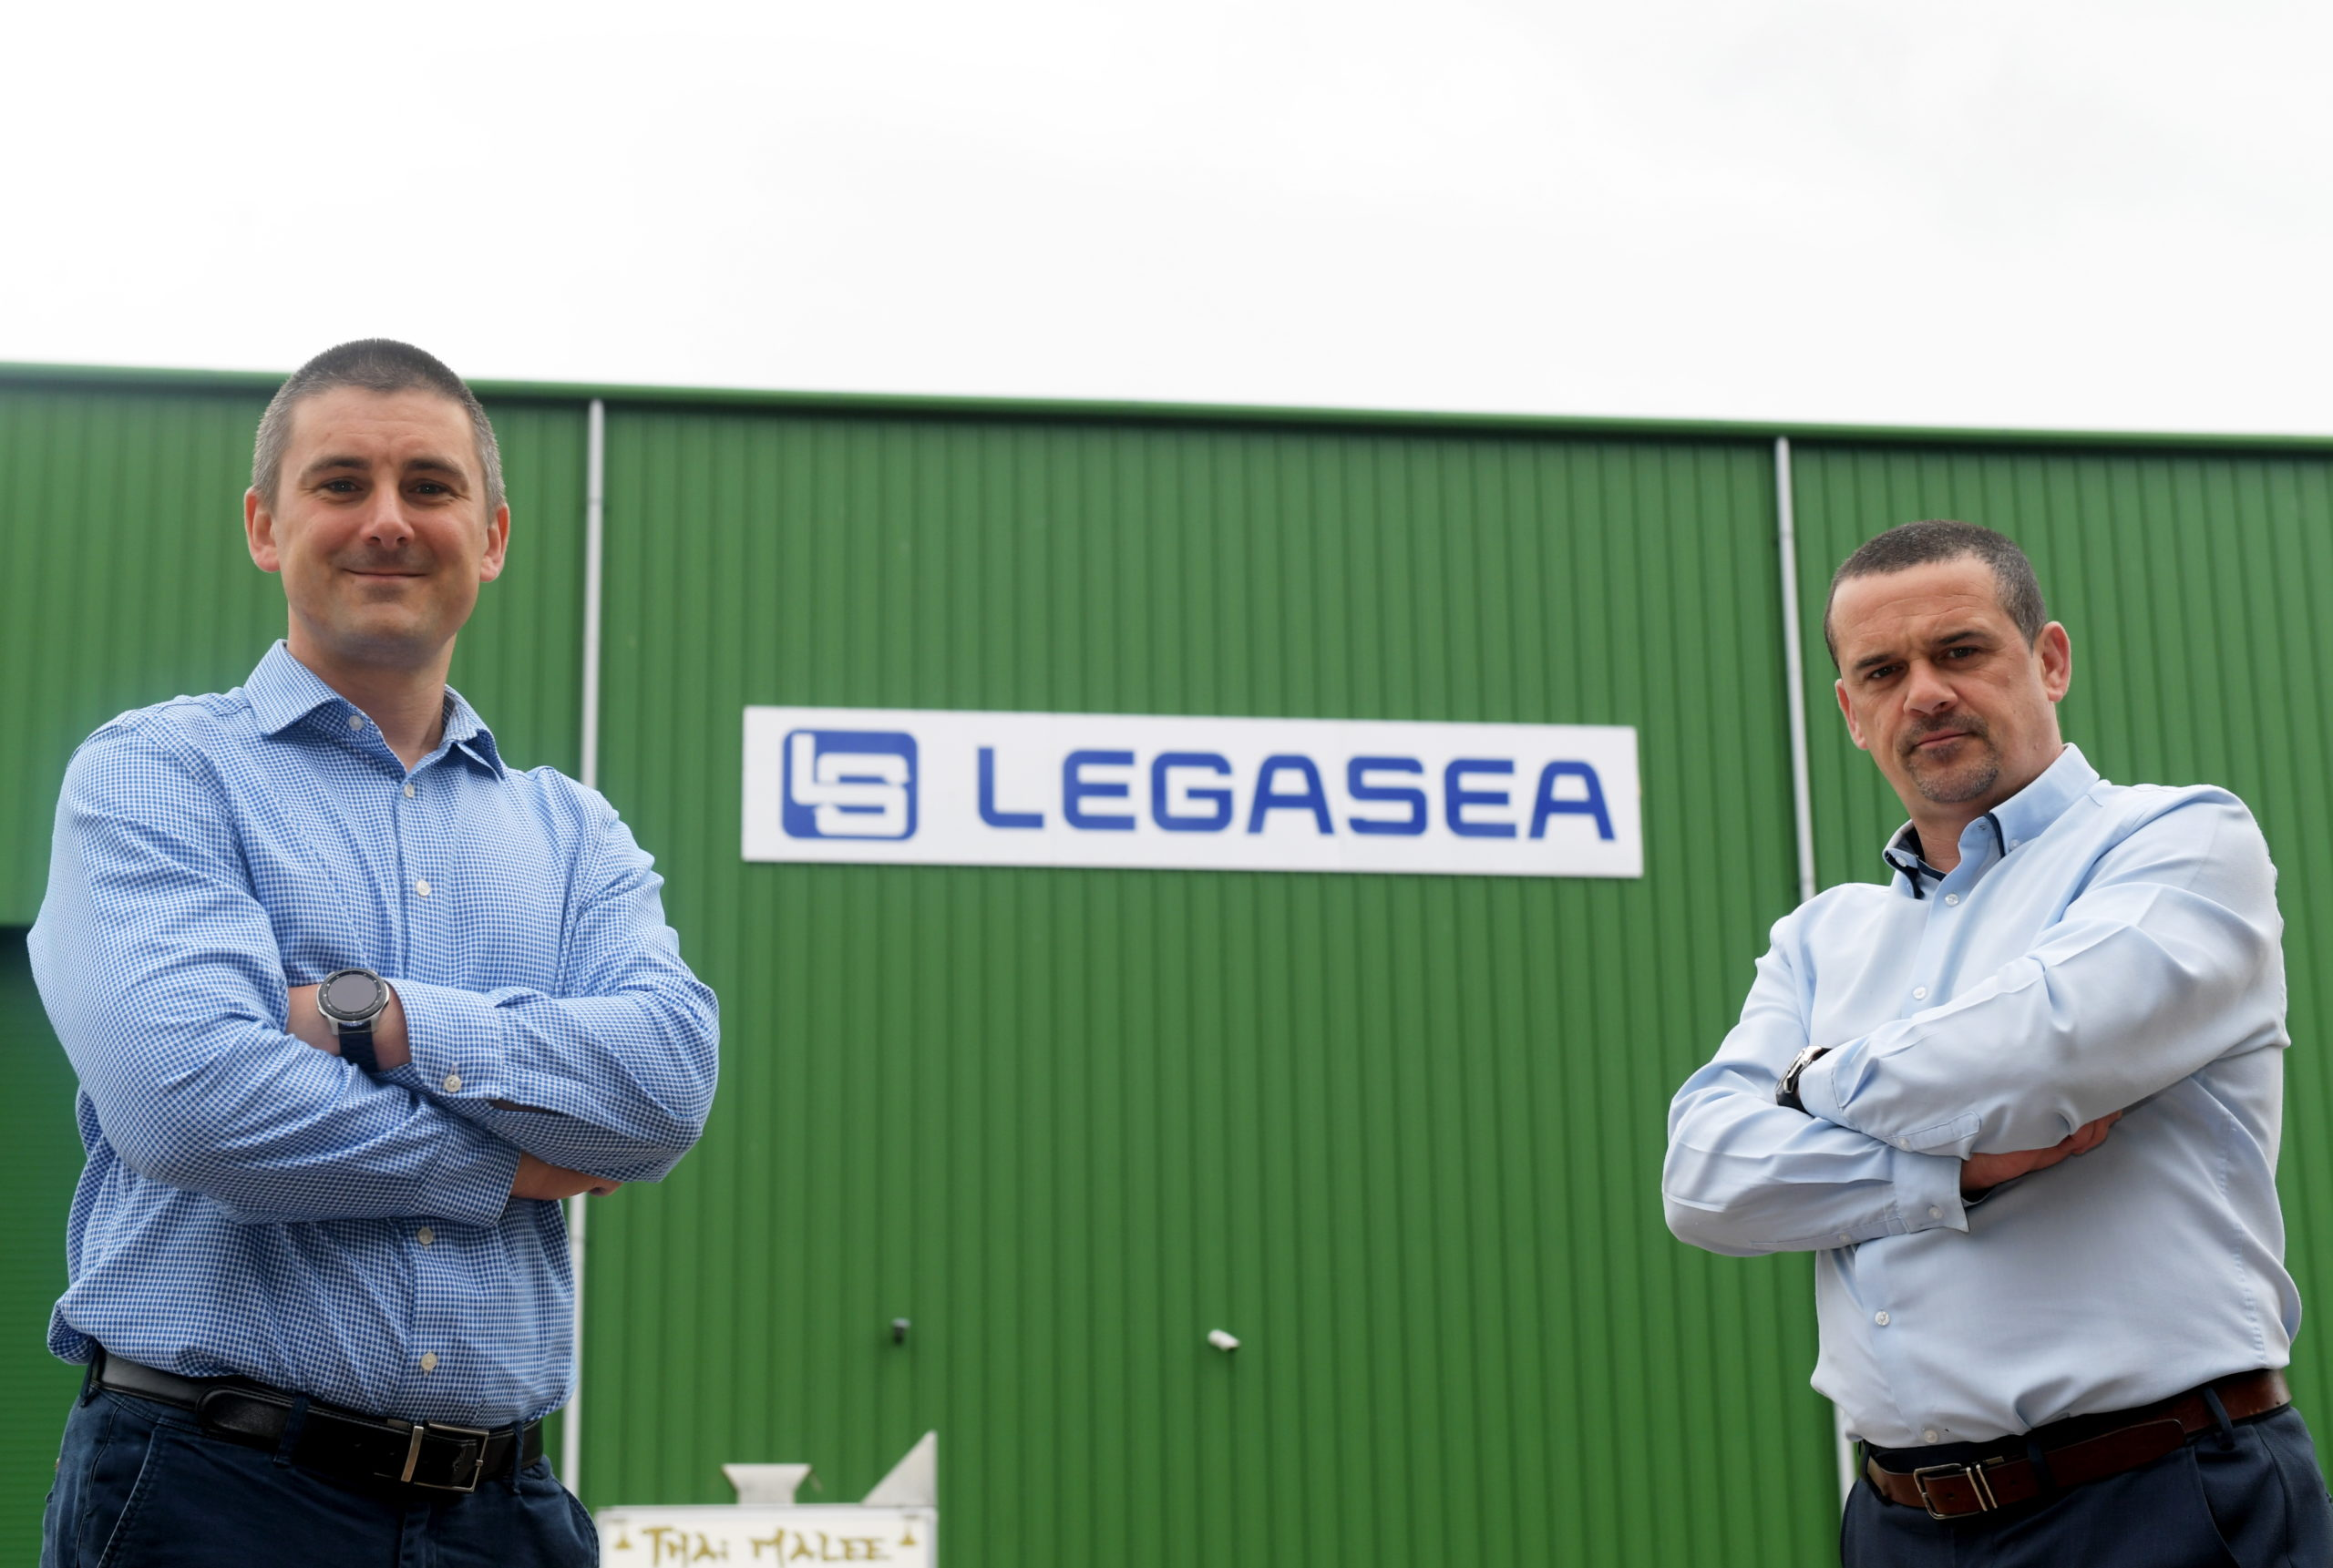 Birchmoss Plant & Storage, Echt.  Legasea have been nominated for national award. From left Ray Milne and Lewis Sim. CR0022679 13/07/20 Picture by KATH FLANNERY